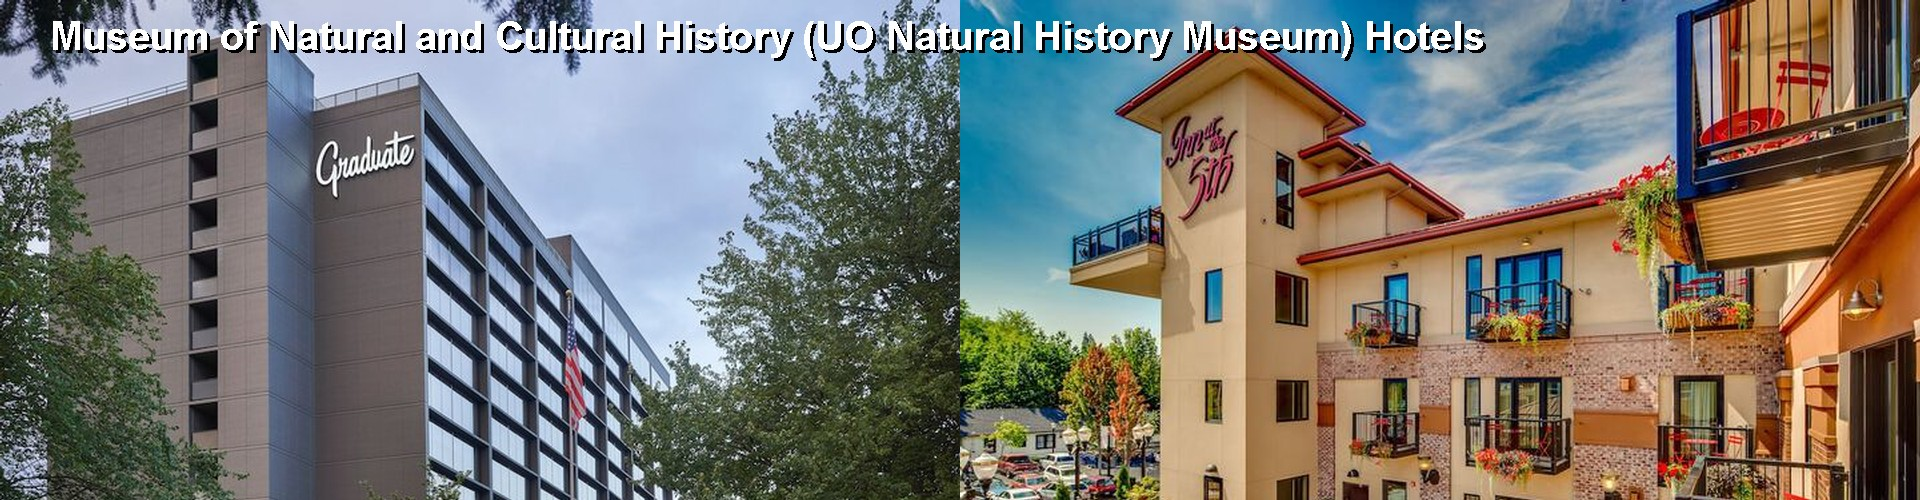 5 Best Hotels near Museum of Natural and Cultural History (UO Natural History Museum)